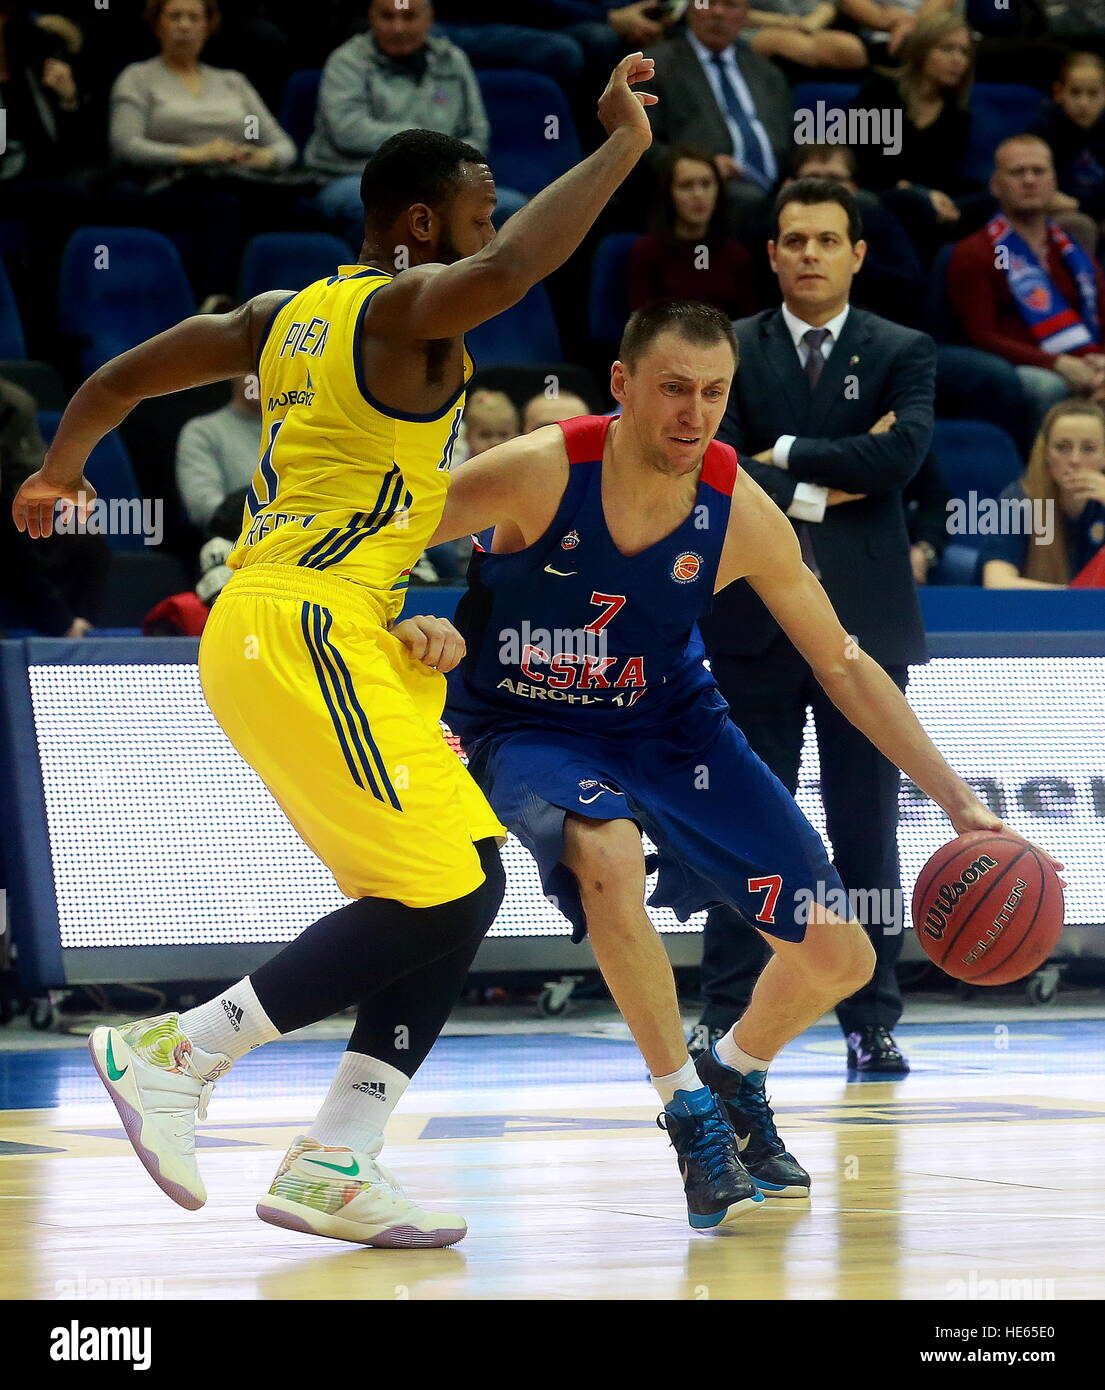 MOSCOW, RUSSIA: DECEMBER 18, 2016: Khimki Moscow Region's Jacob Pullen (L) and CSKA Moscow's Vitaly Fridzon - Stock Image